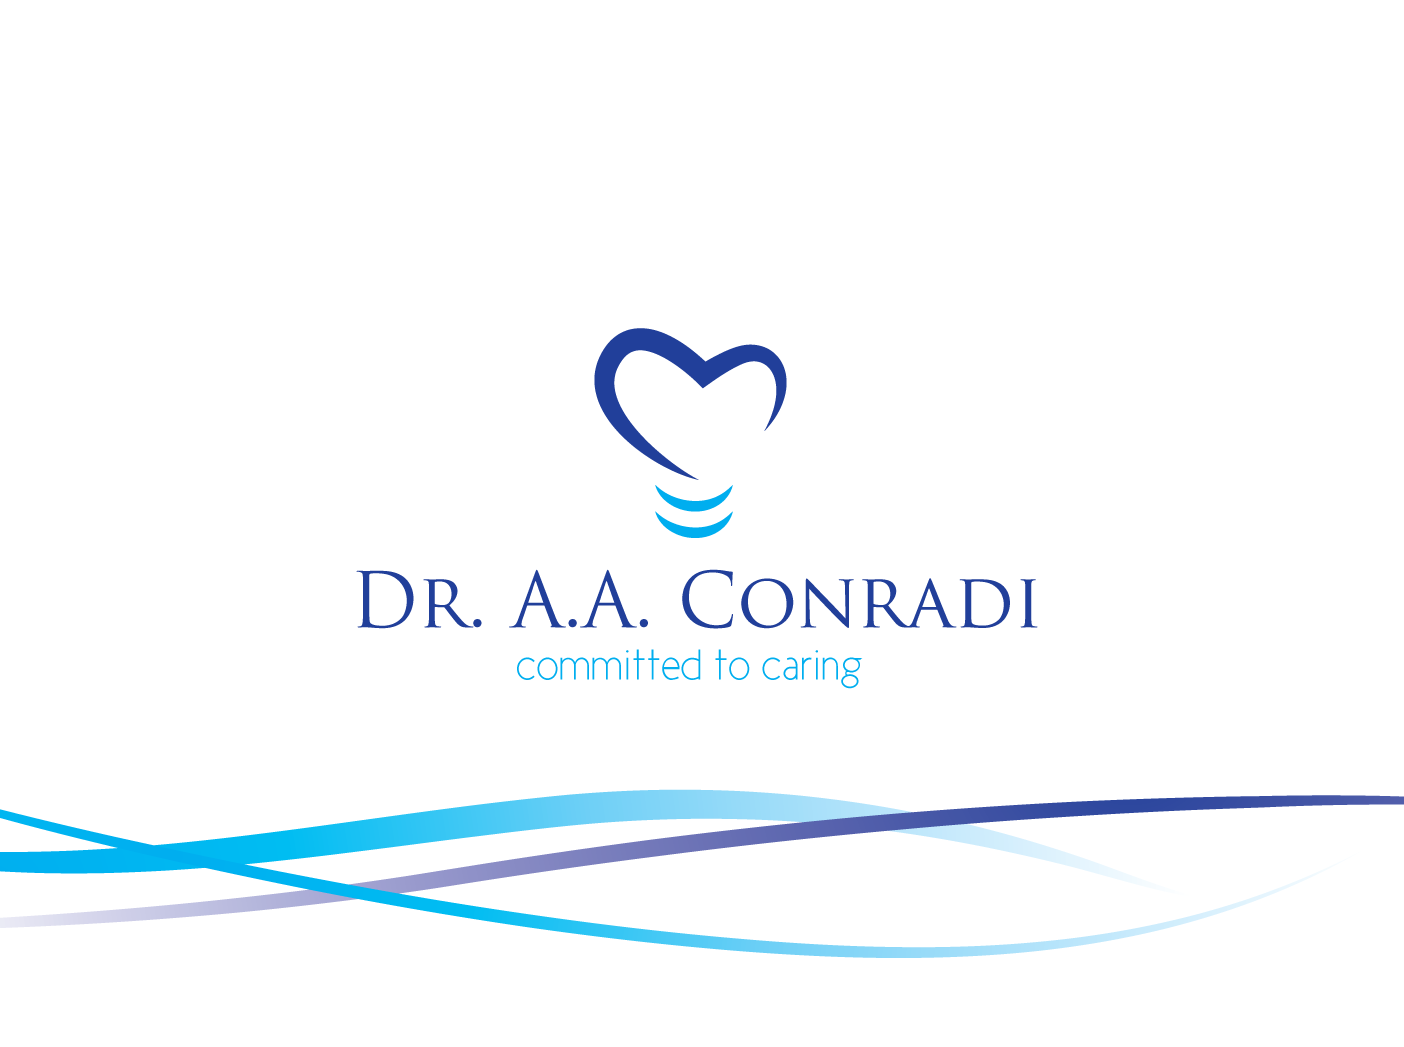 Logo Design by Severiano Fernandes - Entry No. 37 in the Logo Design Contest Unique Logo Design Wanted for Dr. A.A. Conradi.